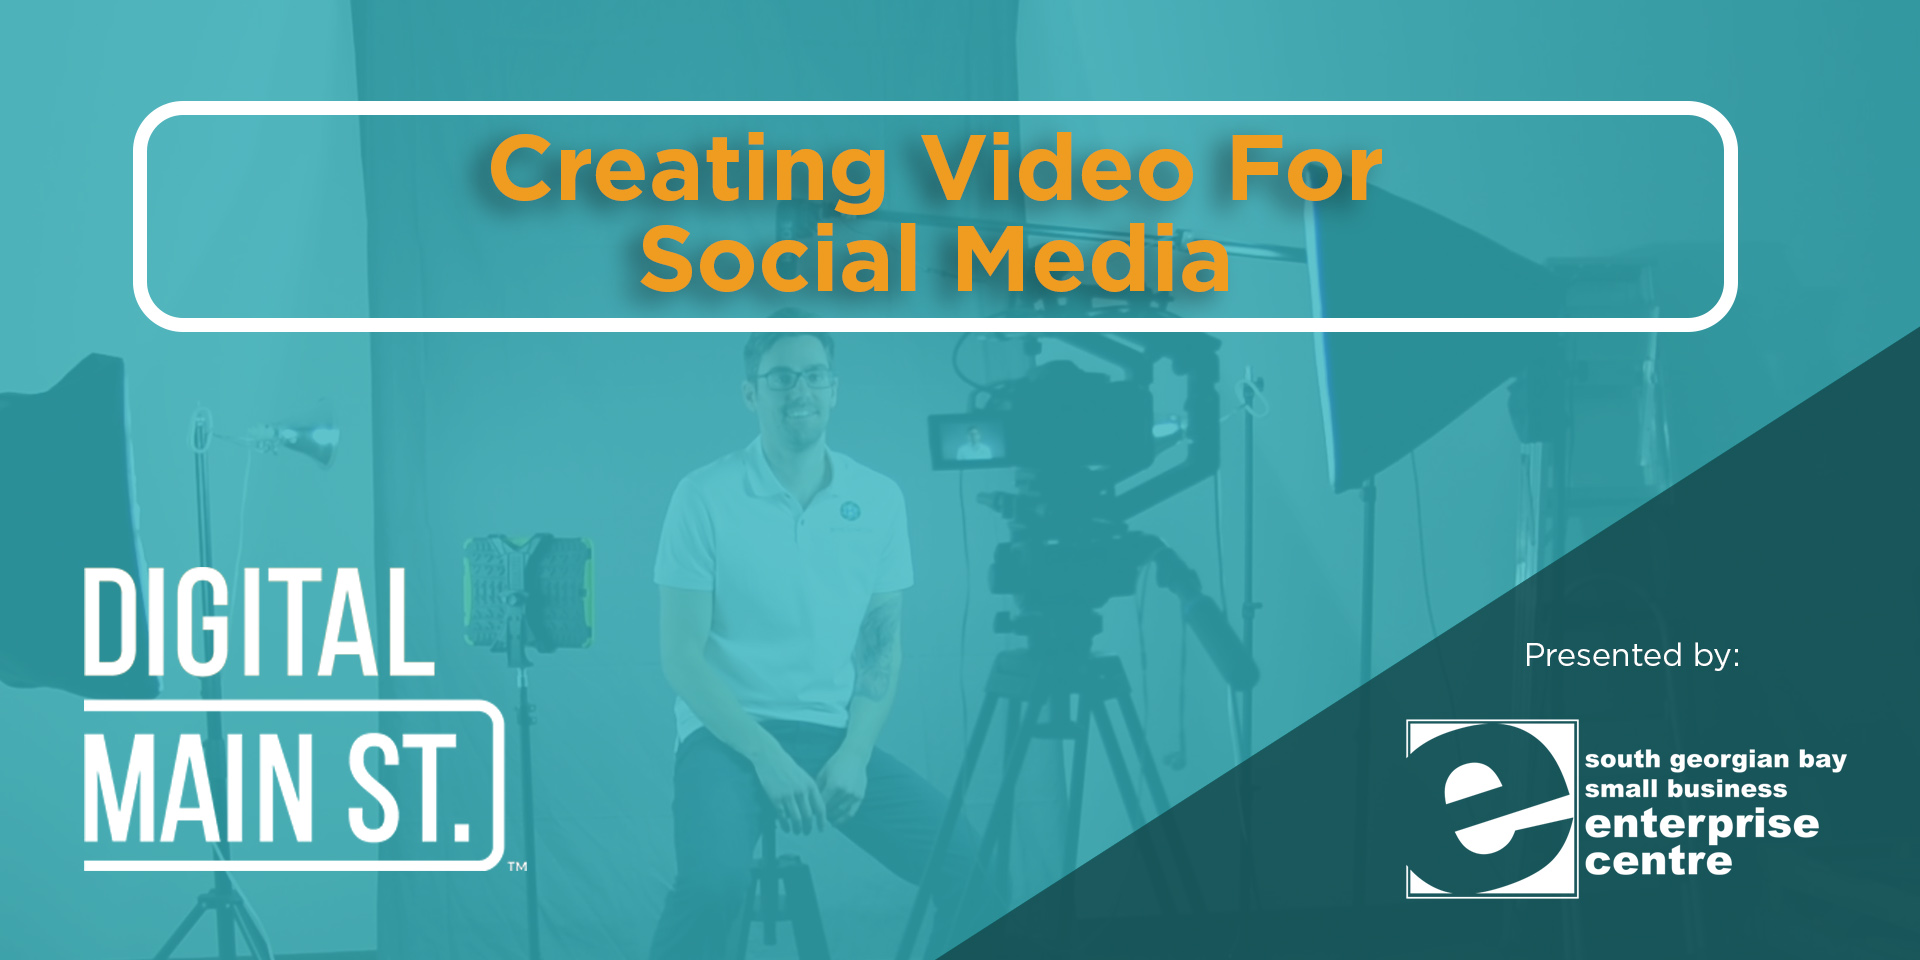 Access to webinar on Creating Video for Social Media